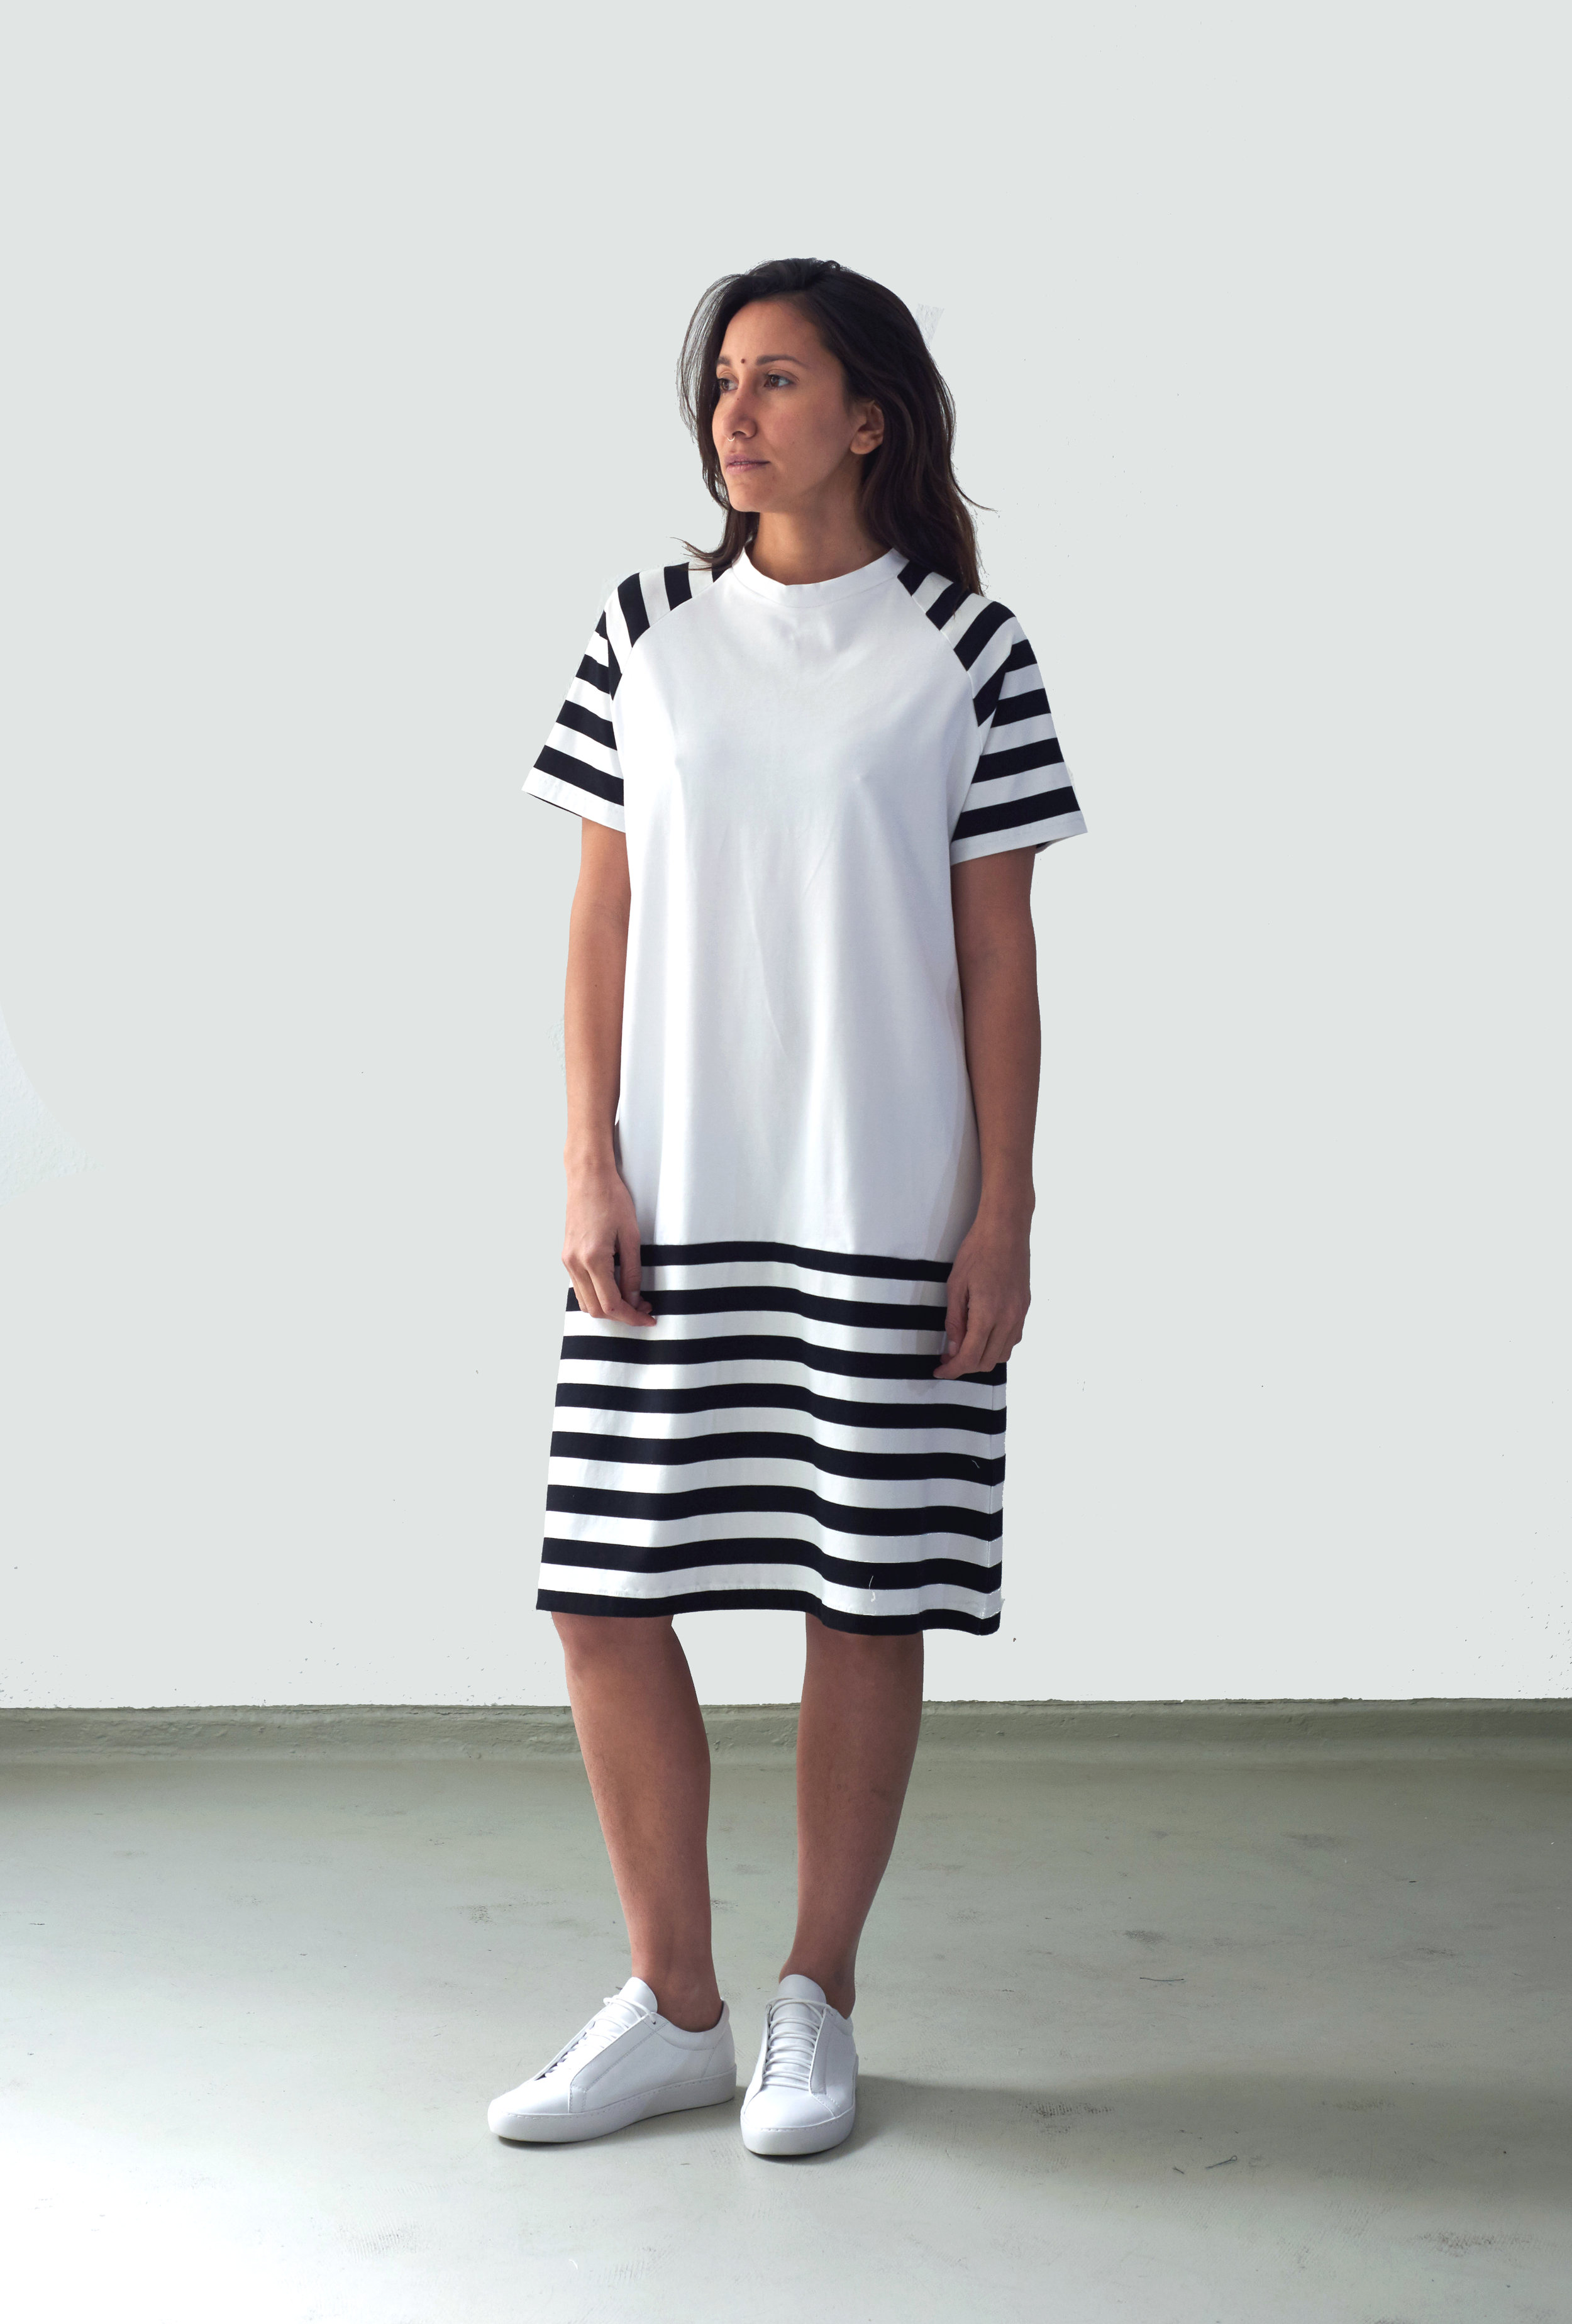 white stripe dress.jpg